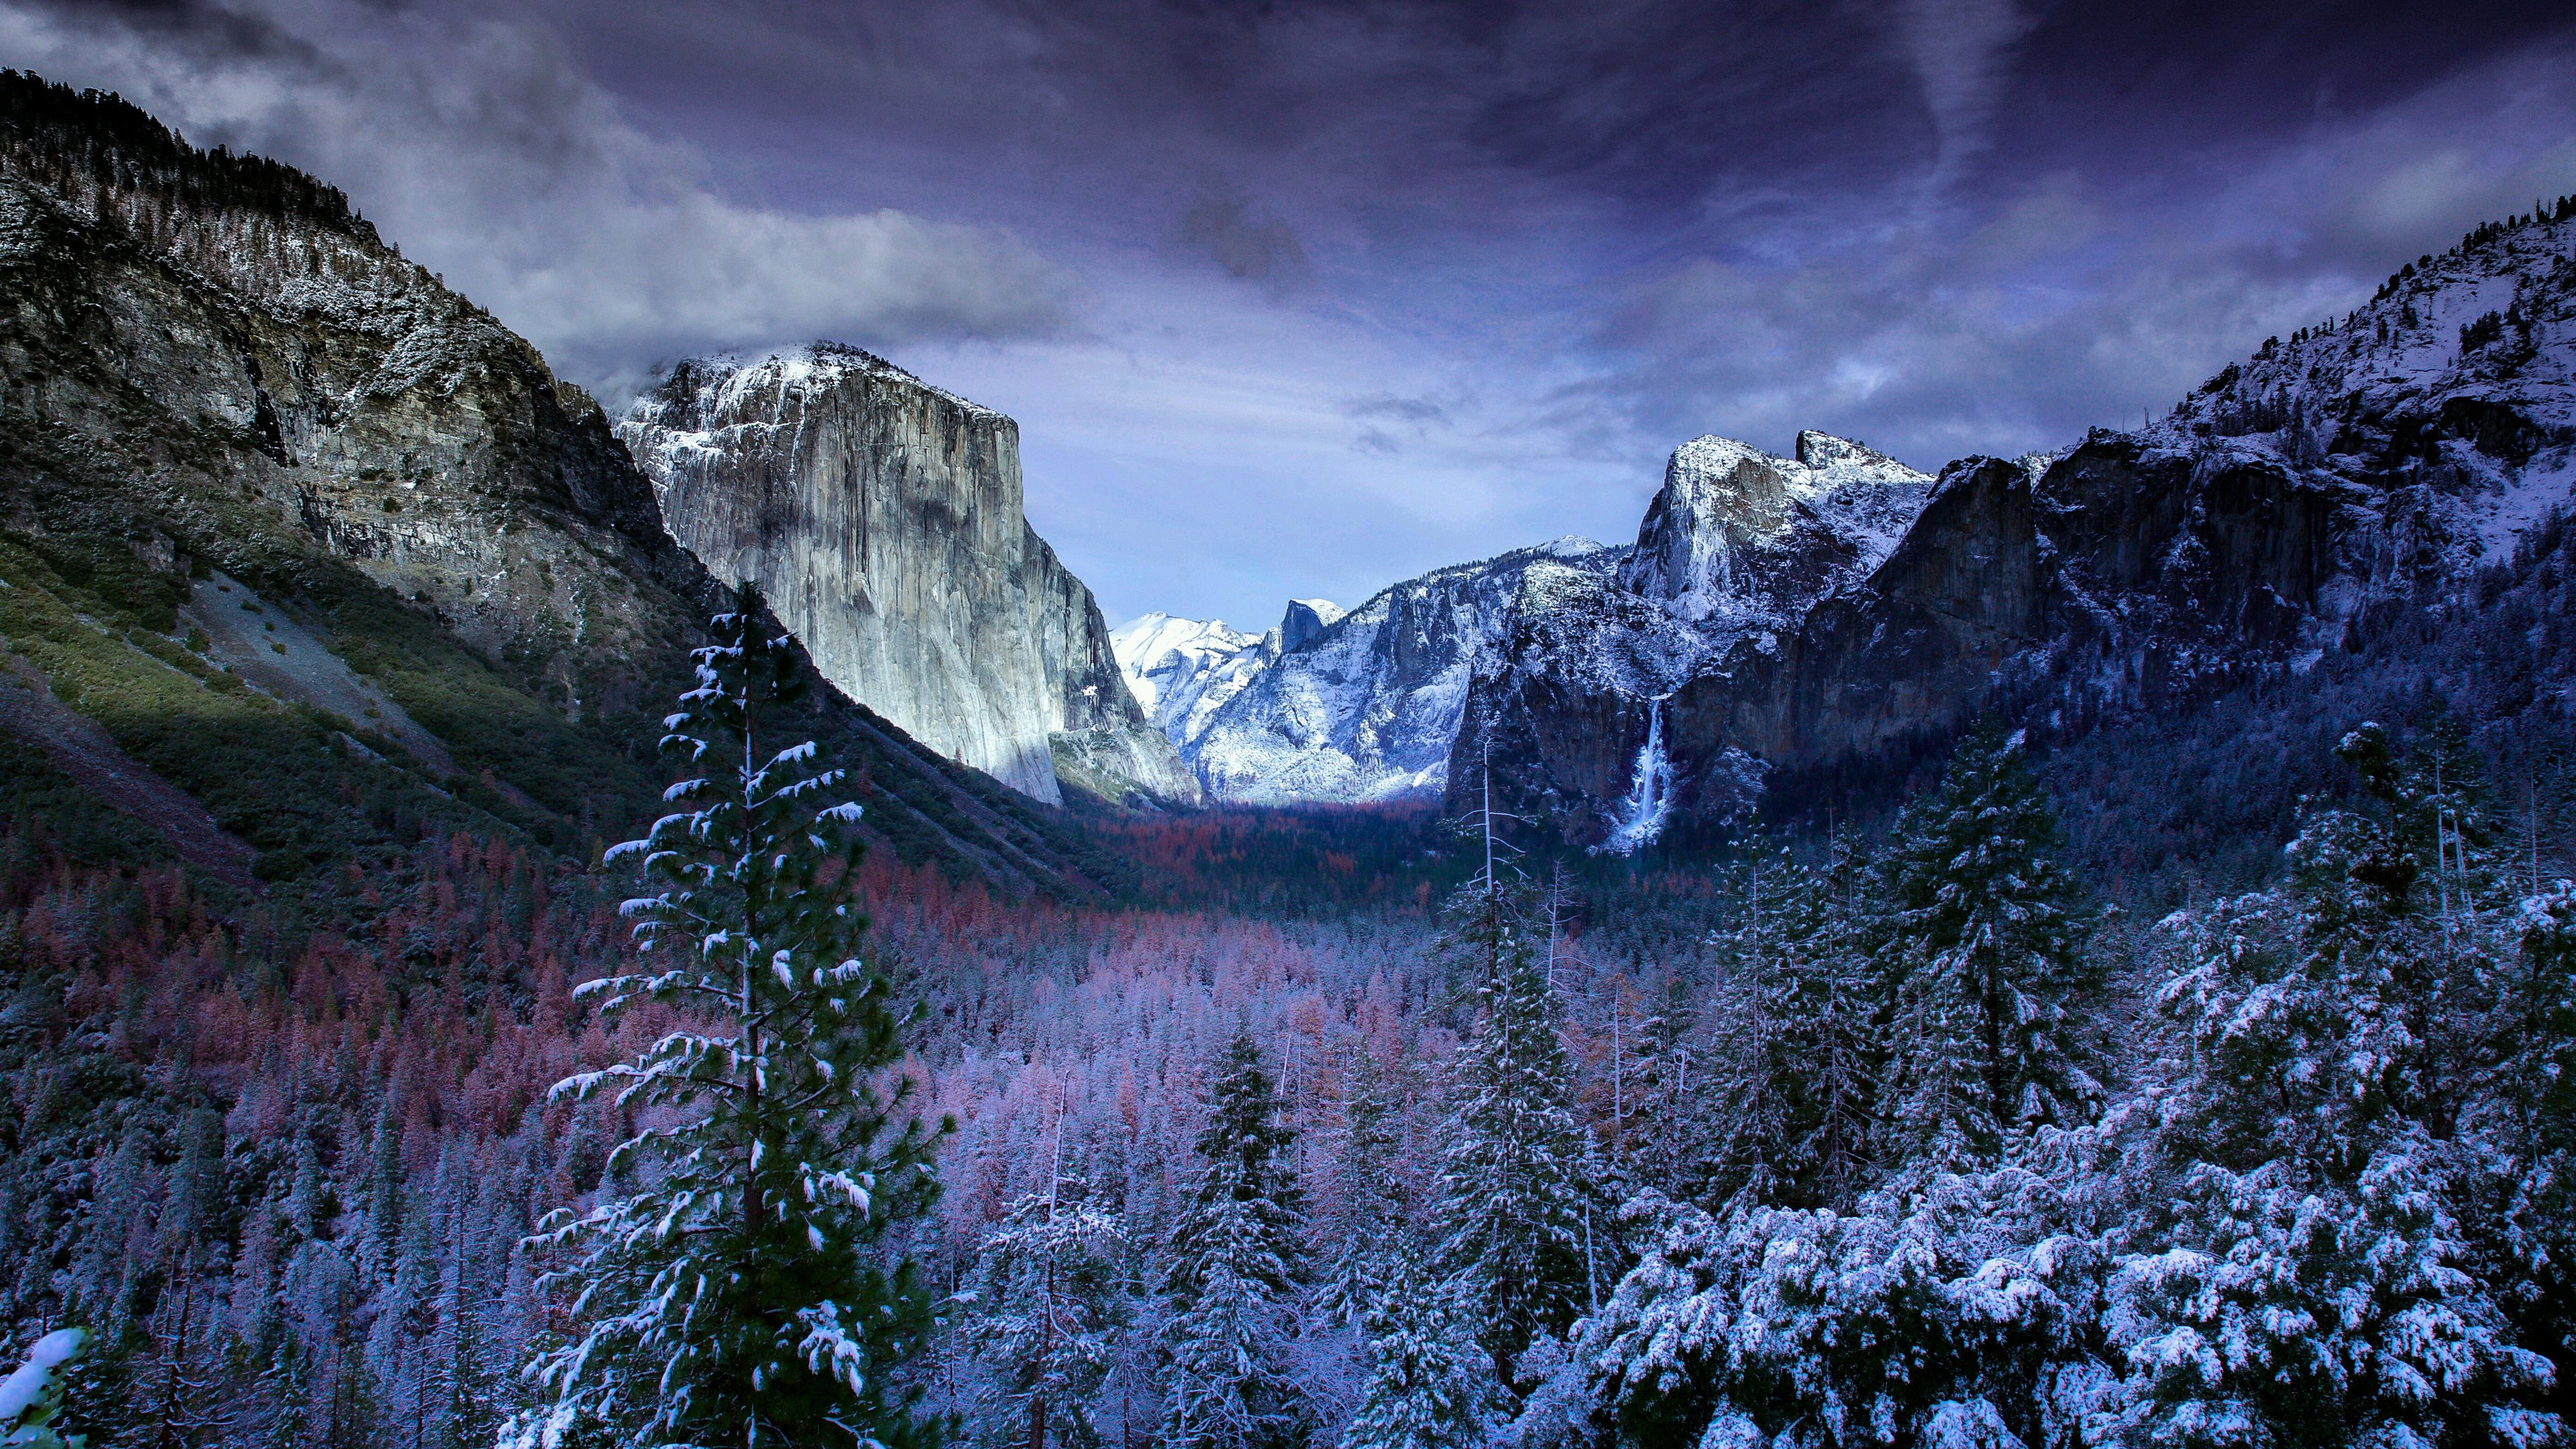 Wallpaper 4k Winter Trees Mountains 4k 4k Wallpapers 5k